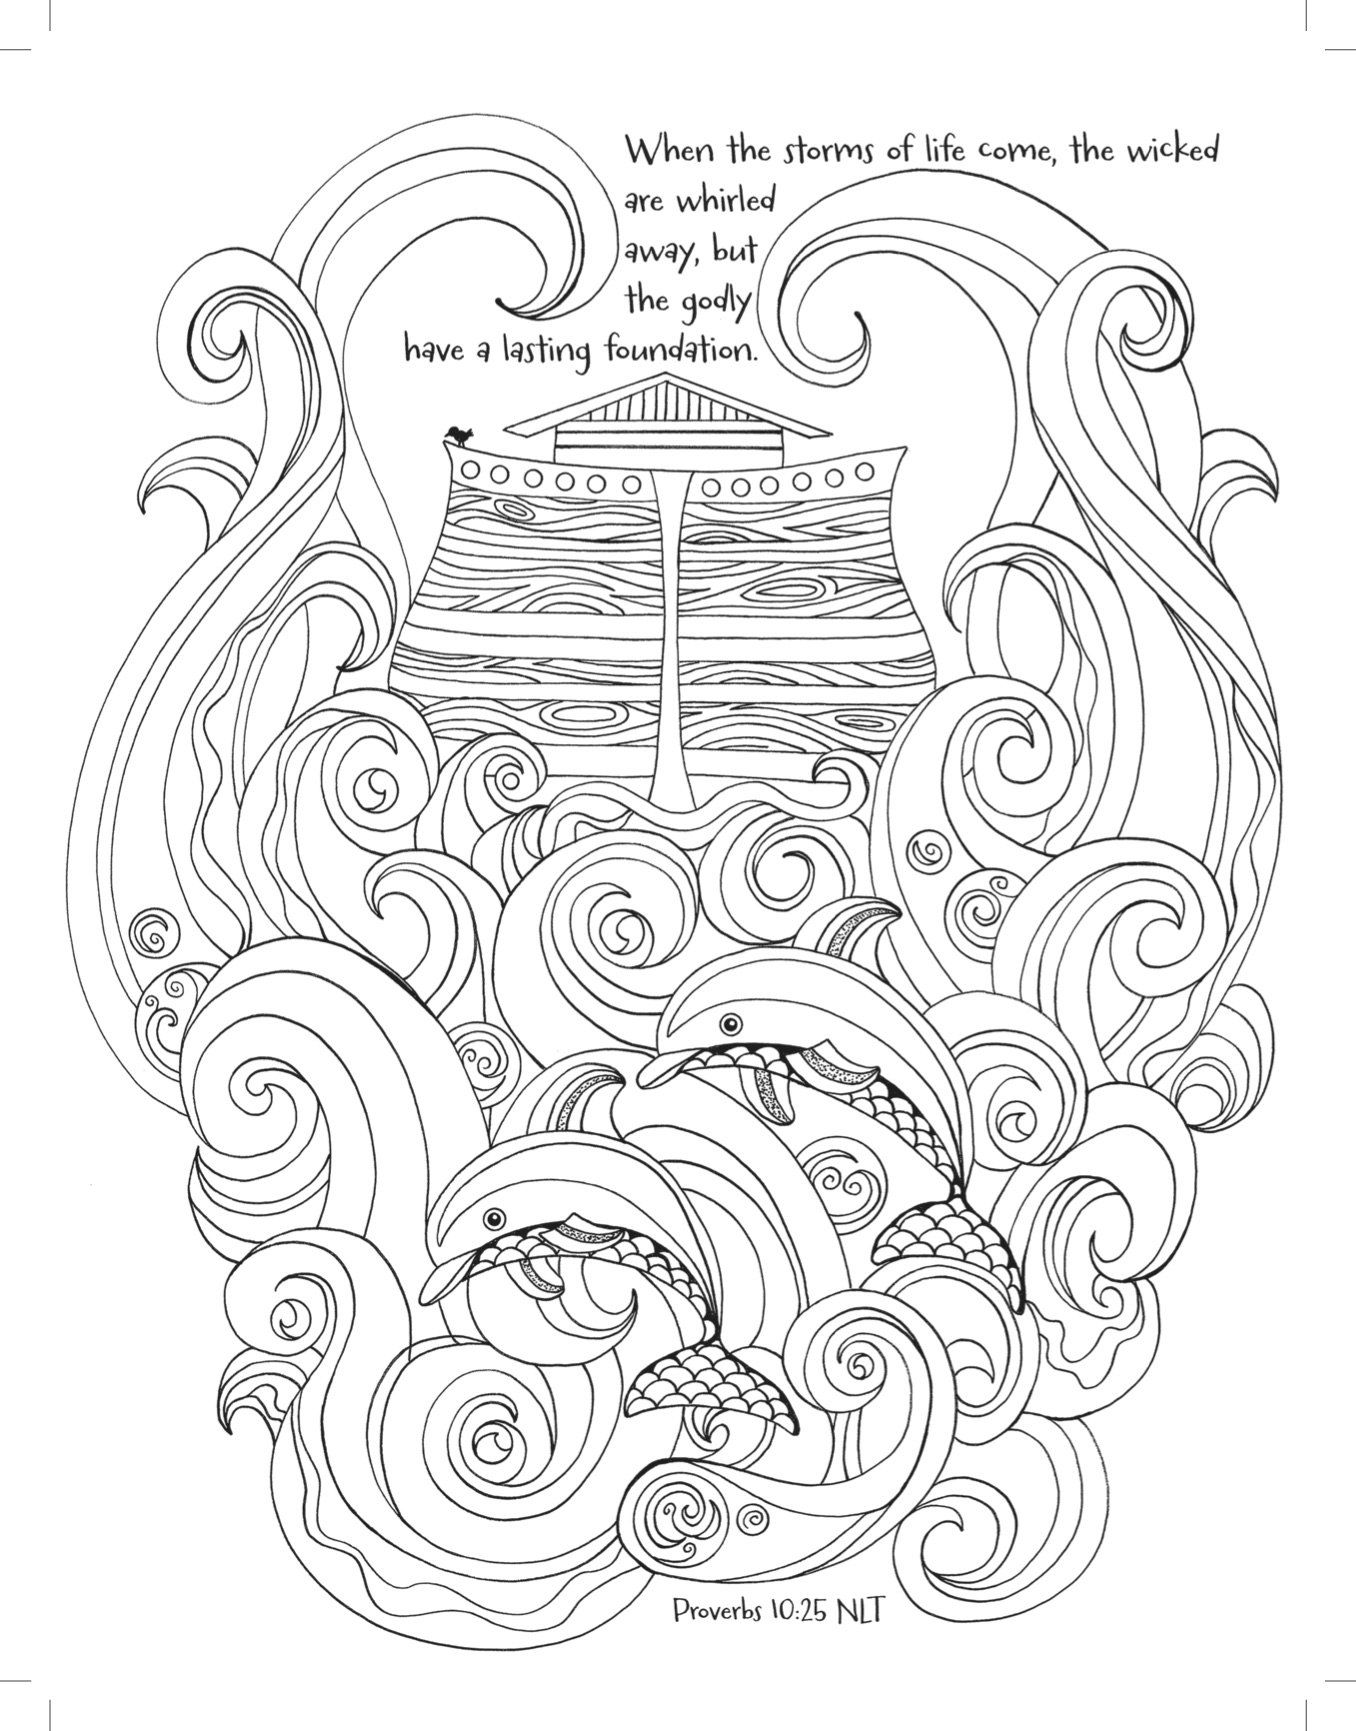 Flood Coloring Pages at GetDrawings.com   Free for personal use ...